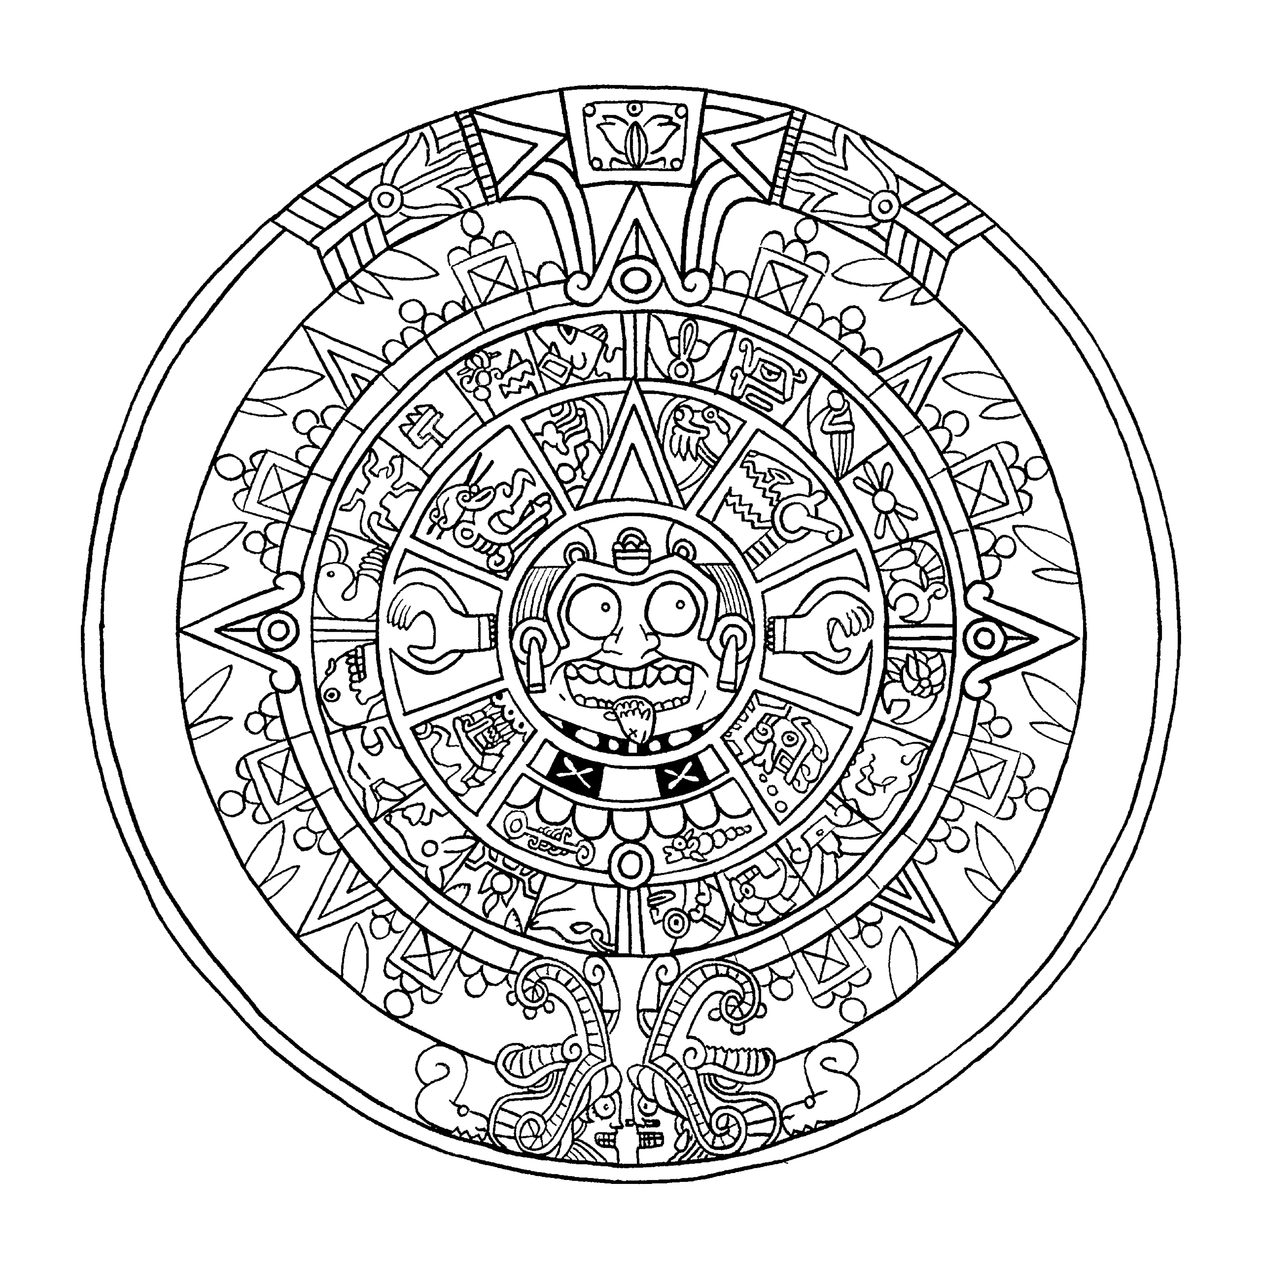 Mayan Calendar Sketch At Paintingvalley